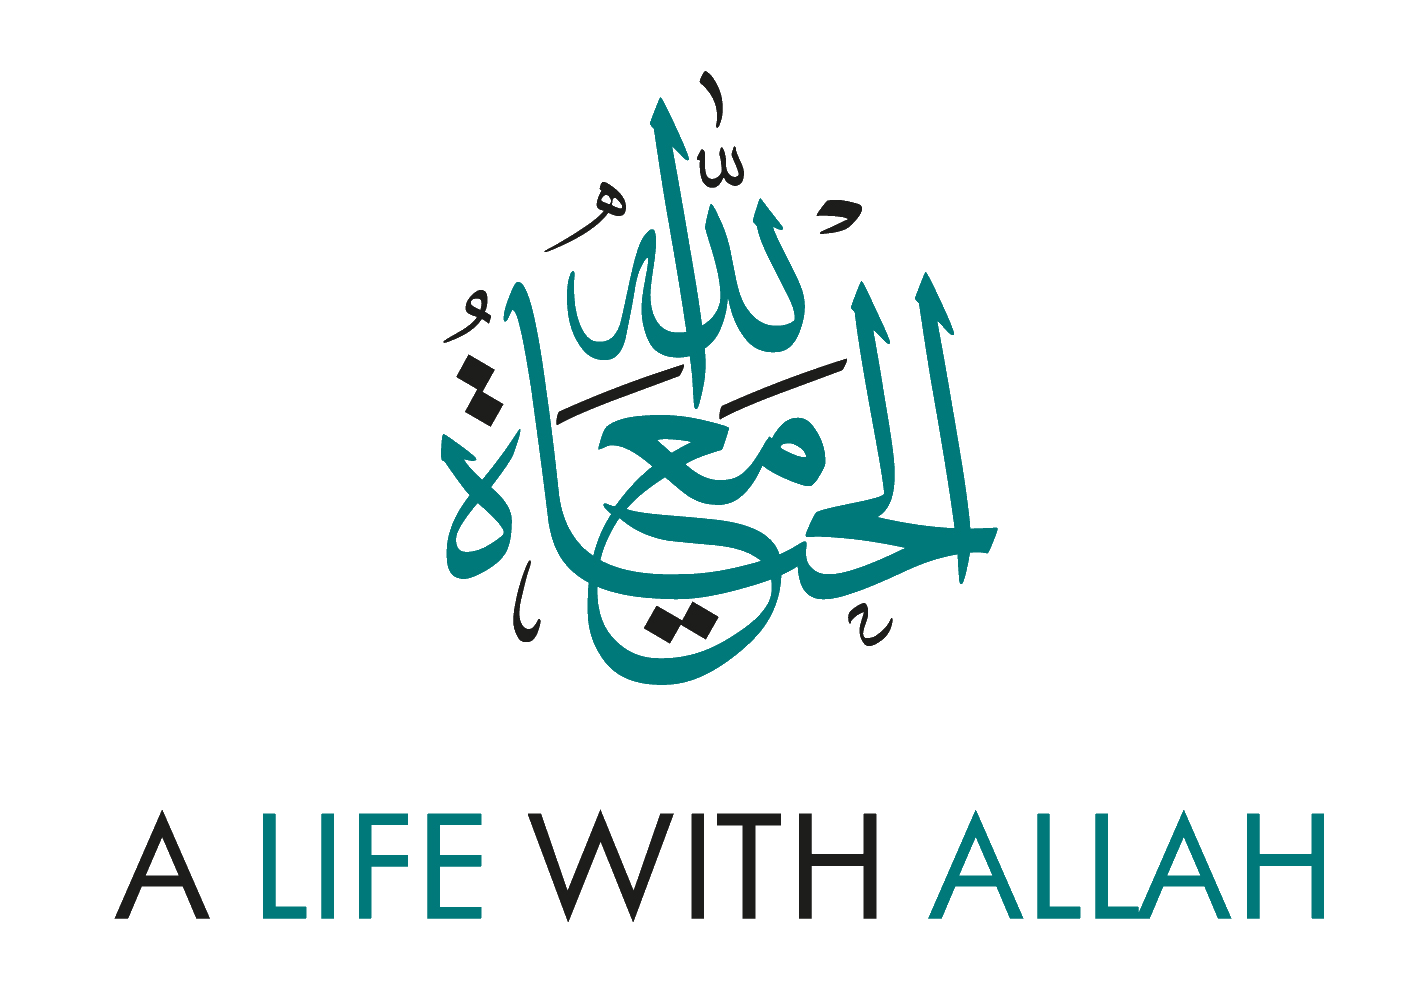 A Life with Allah